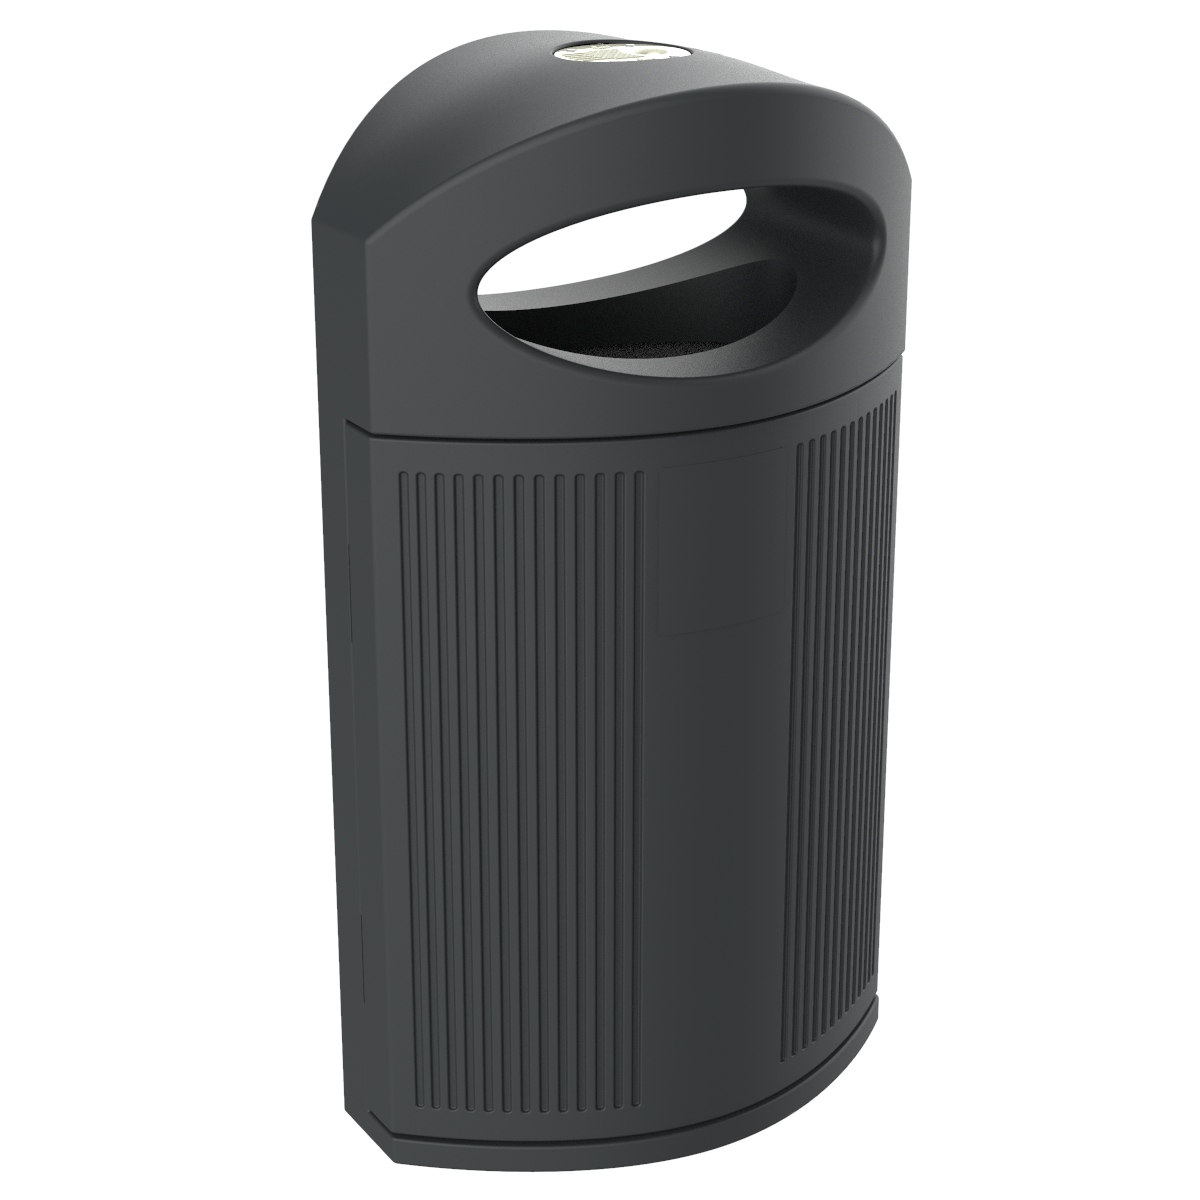 Ibiza Polyethylene Grey color RAL 7021 Bin for street P-23I-ANONIMA